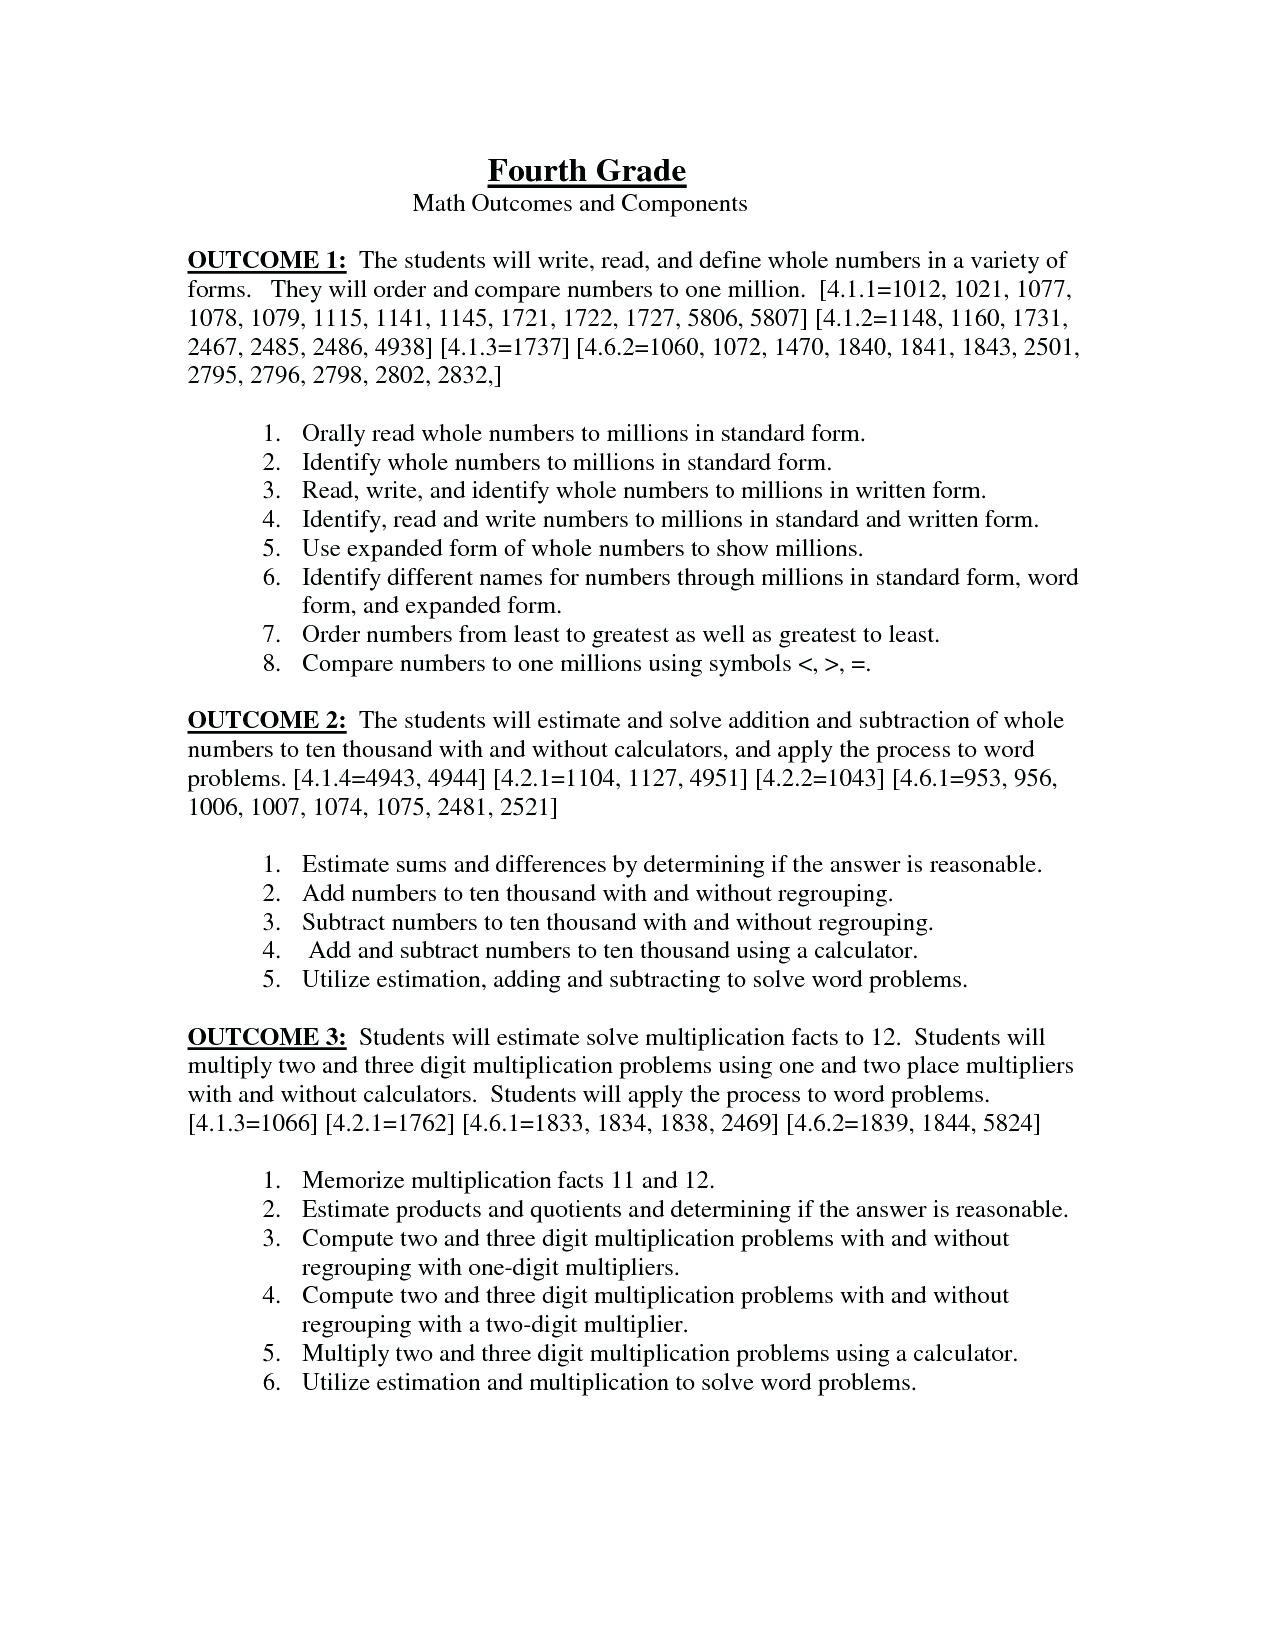 hight resolution of 5 Free Math Worksheets Second Grade 2 Subtraction Subtract whole Tens From  3 Digit Numbers - AMP